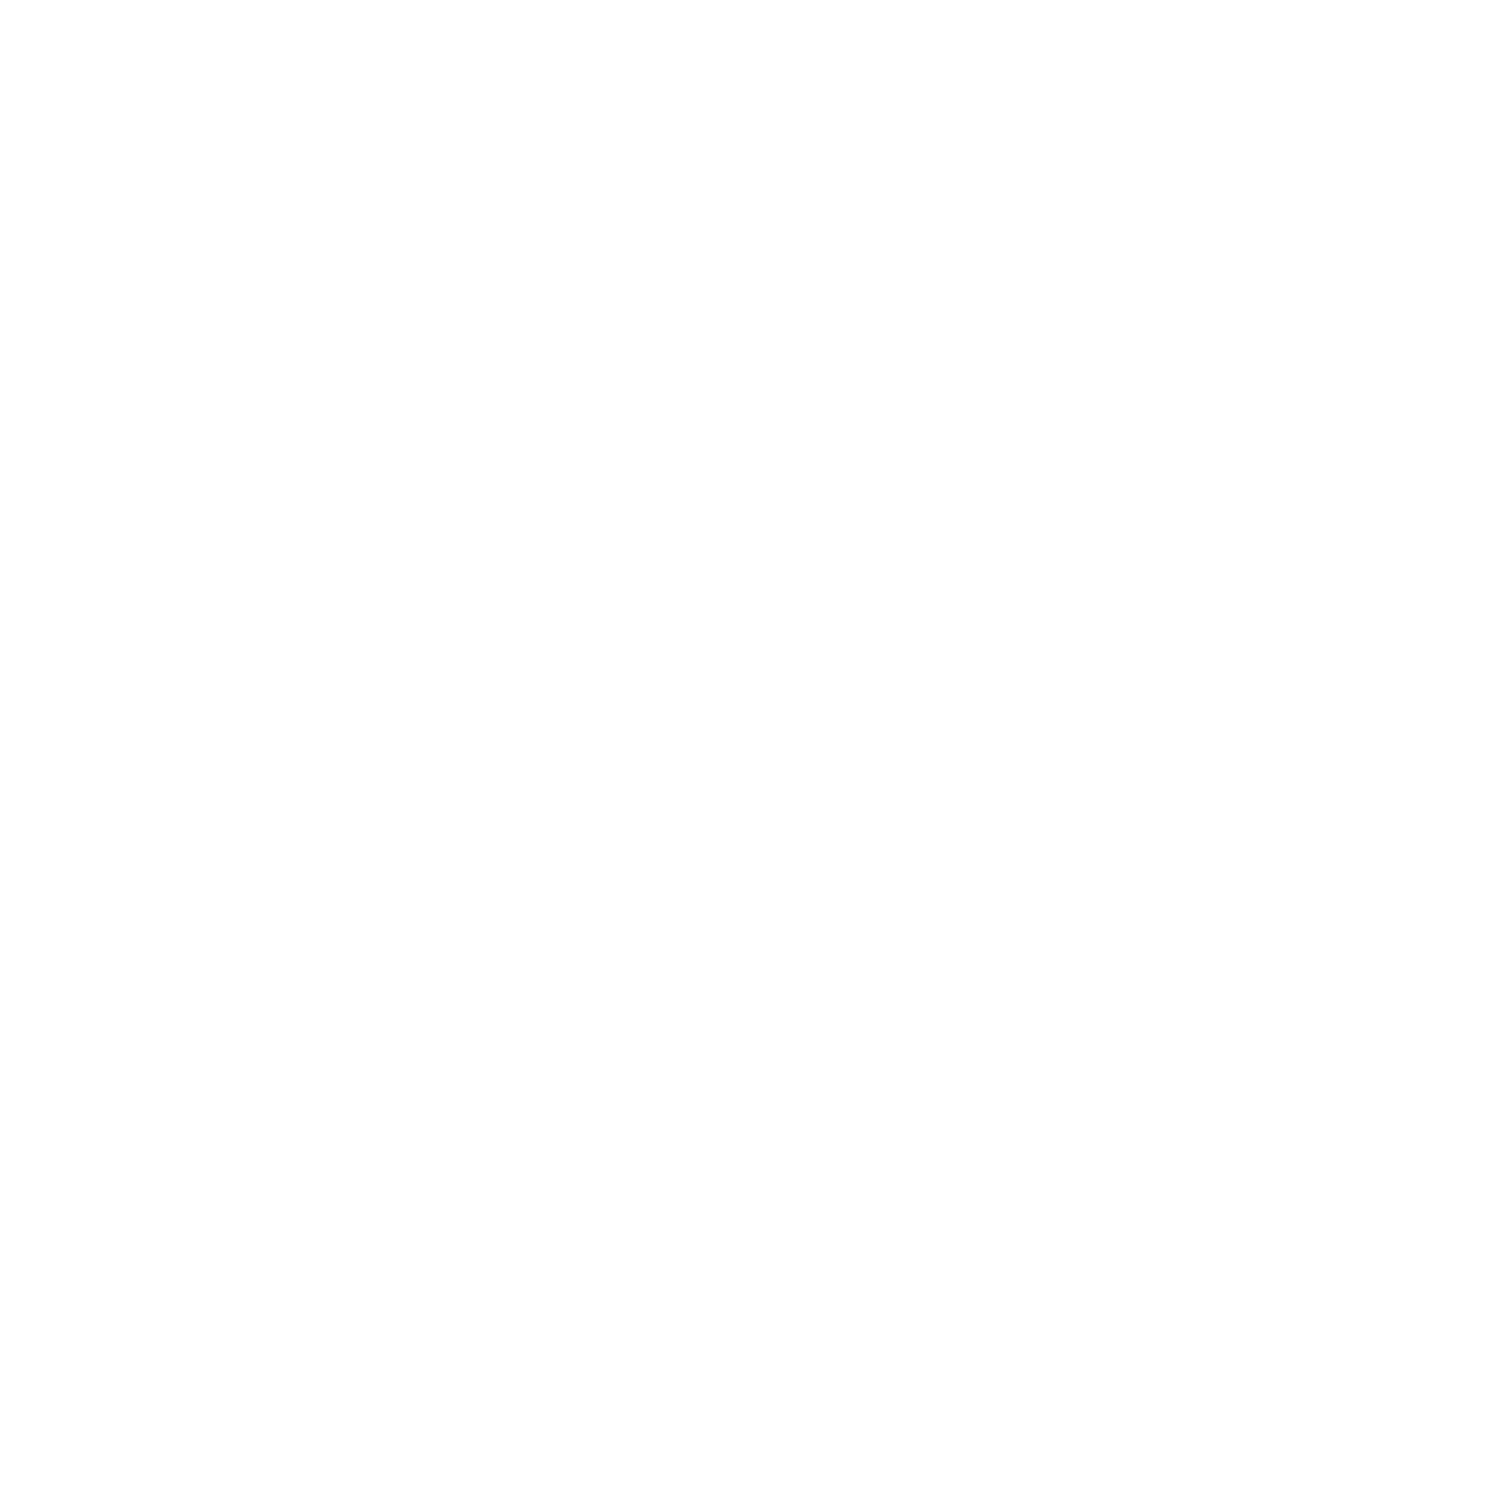 The Coffee Bean & Tea Leaf® at work